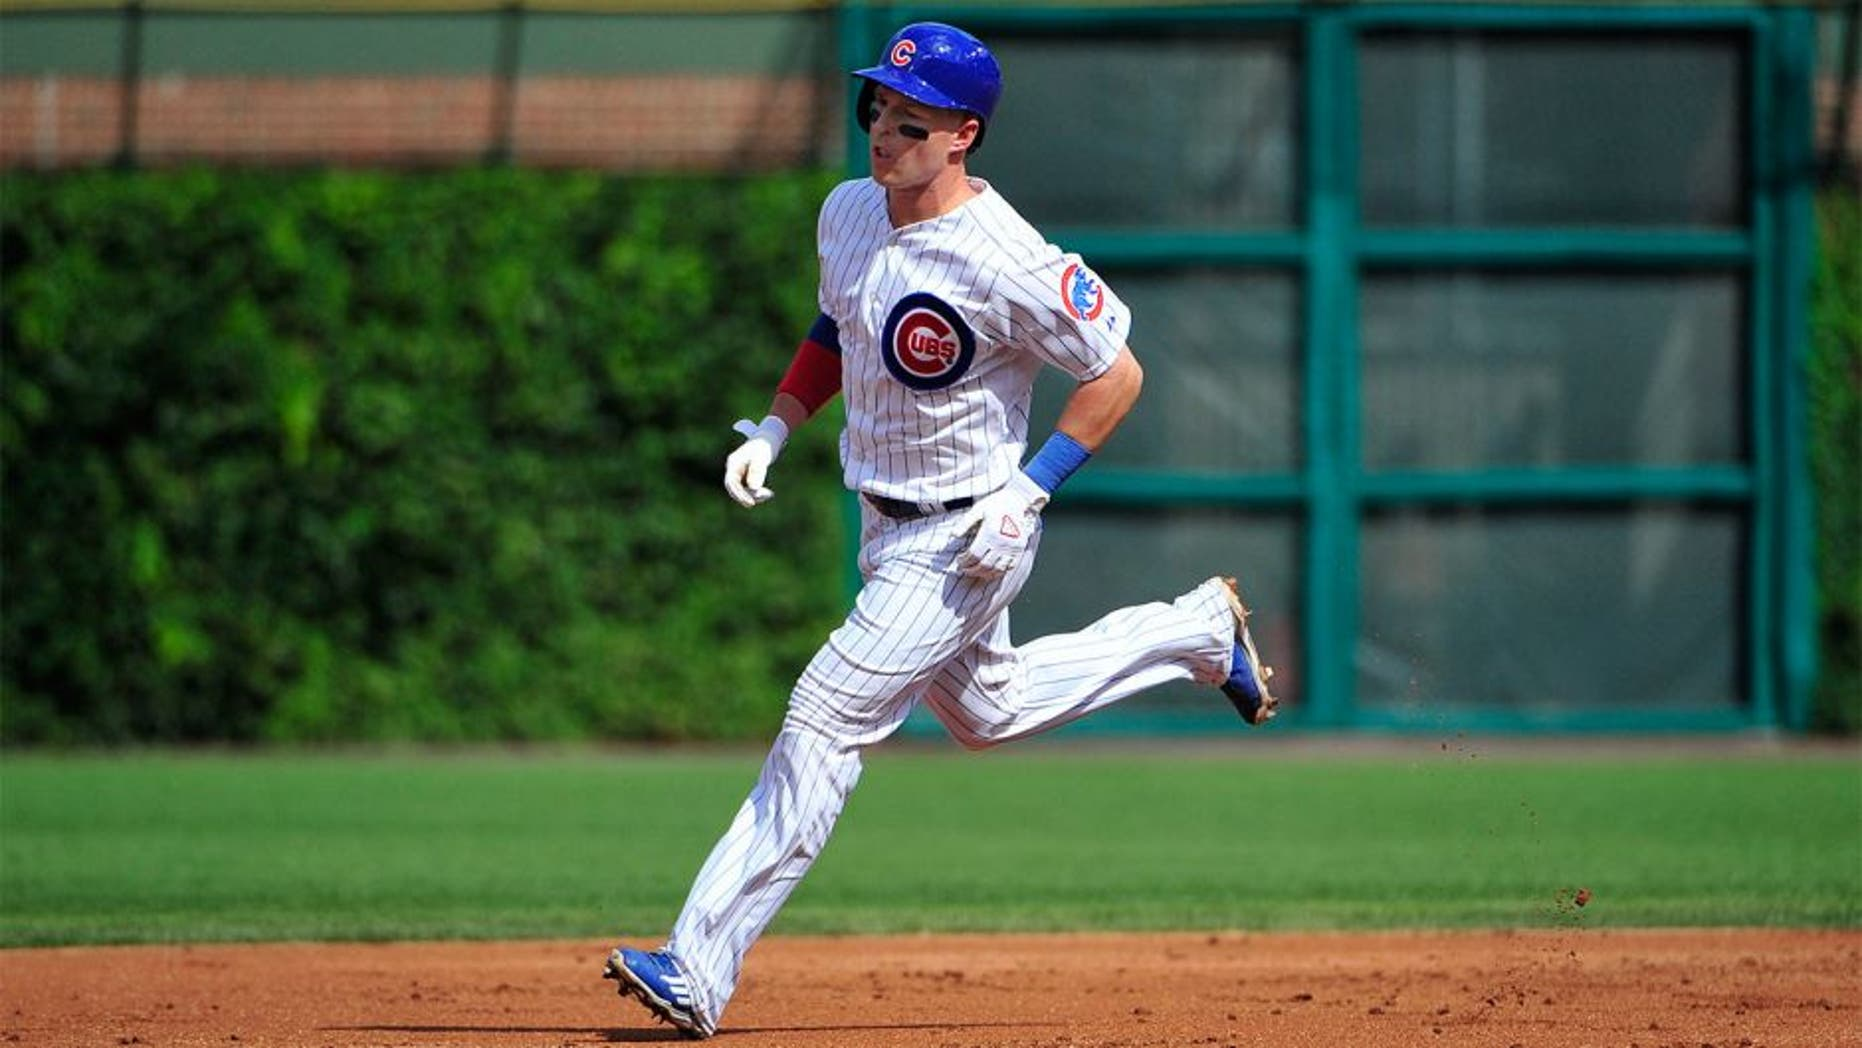 CHICAGO, IL - AUGUST 21: Chris Coghlan #8 of the Chicago Cubs runs the bases after hitting a home run against the Atlanta Braves during the first inning on August 21, 2015 at Wrigley Field in Chicago, Illinois. (Photo by David Banks/Getty Images)